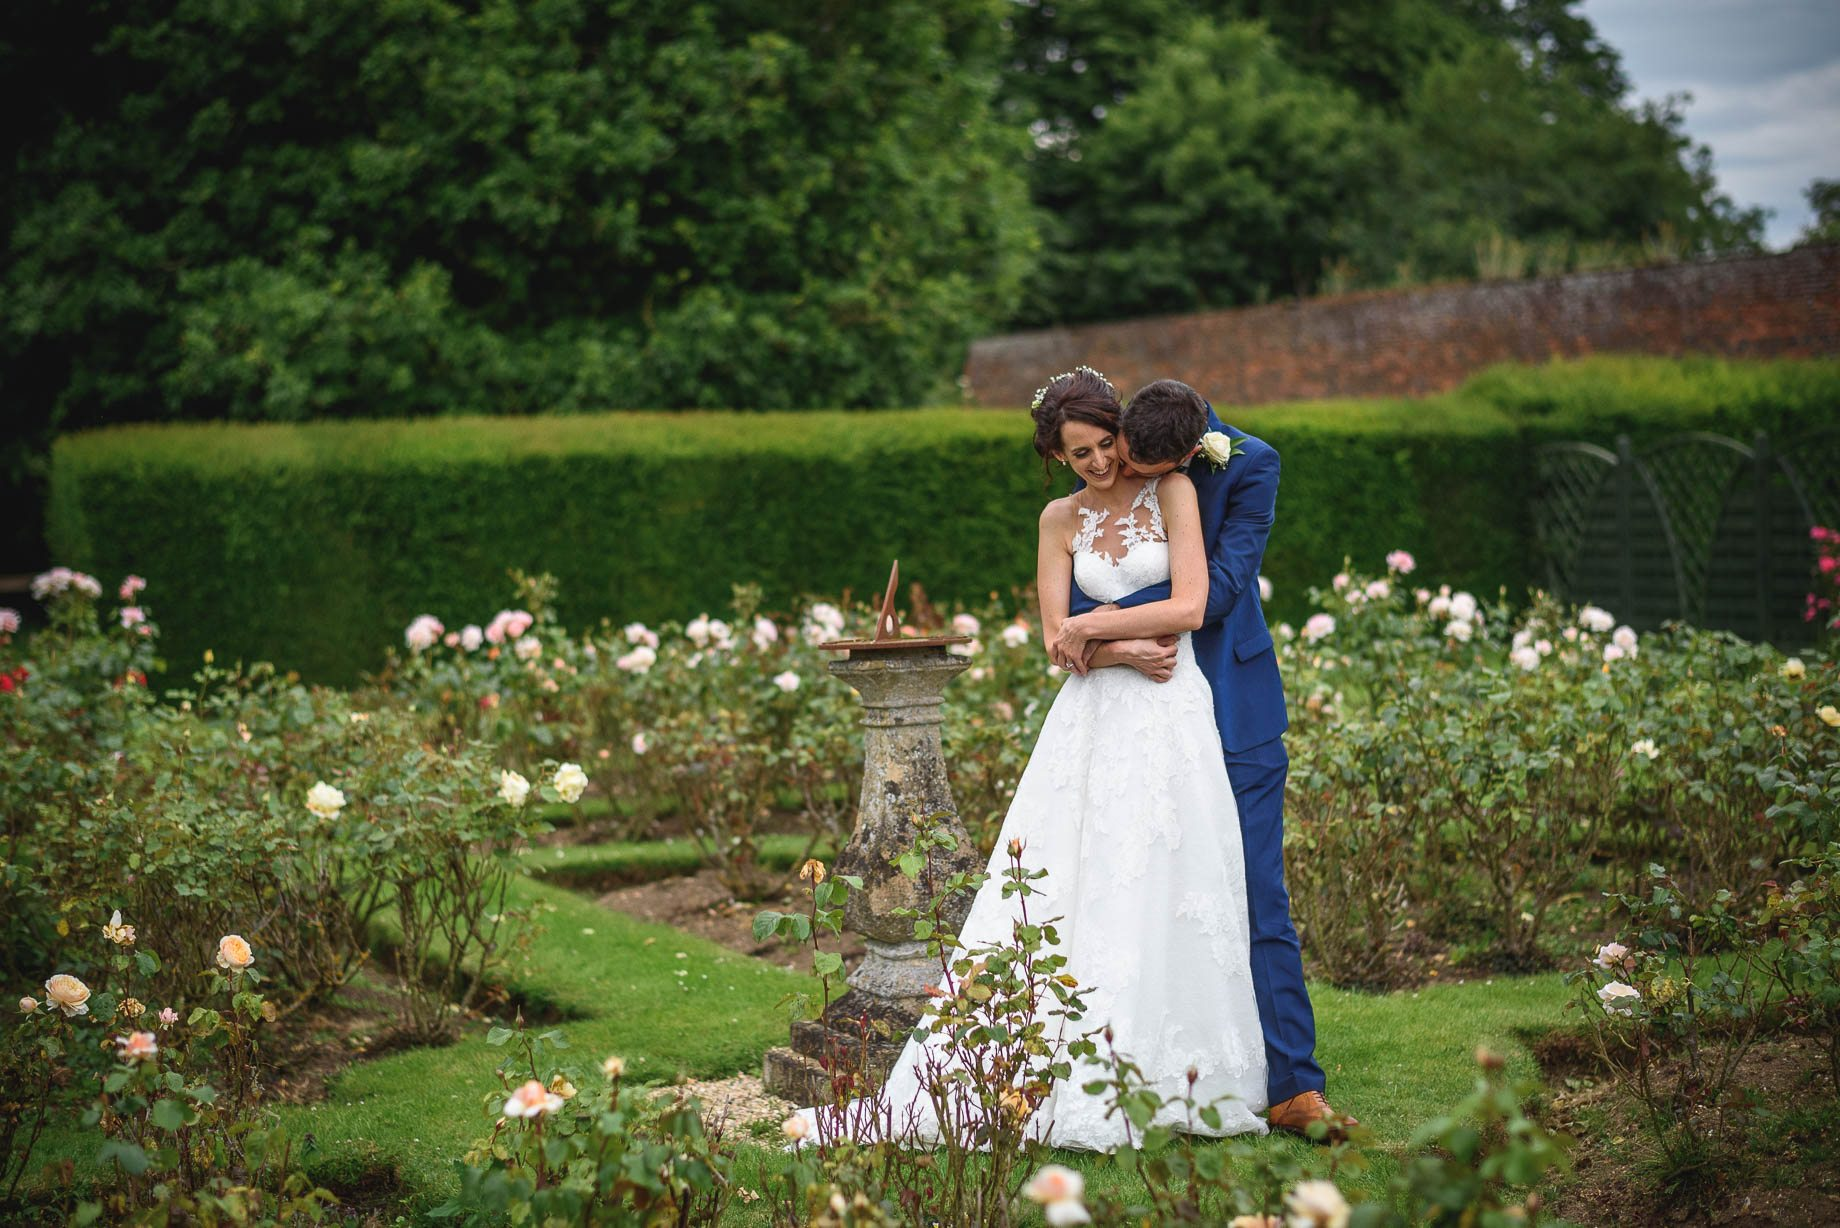 Hertfordshire wedding photography - Sarah and Stephen by Guy Collier Photography (137 of 161)